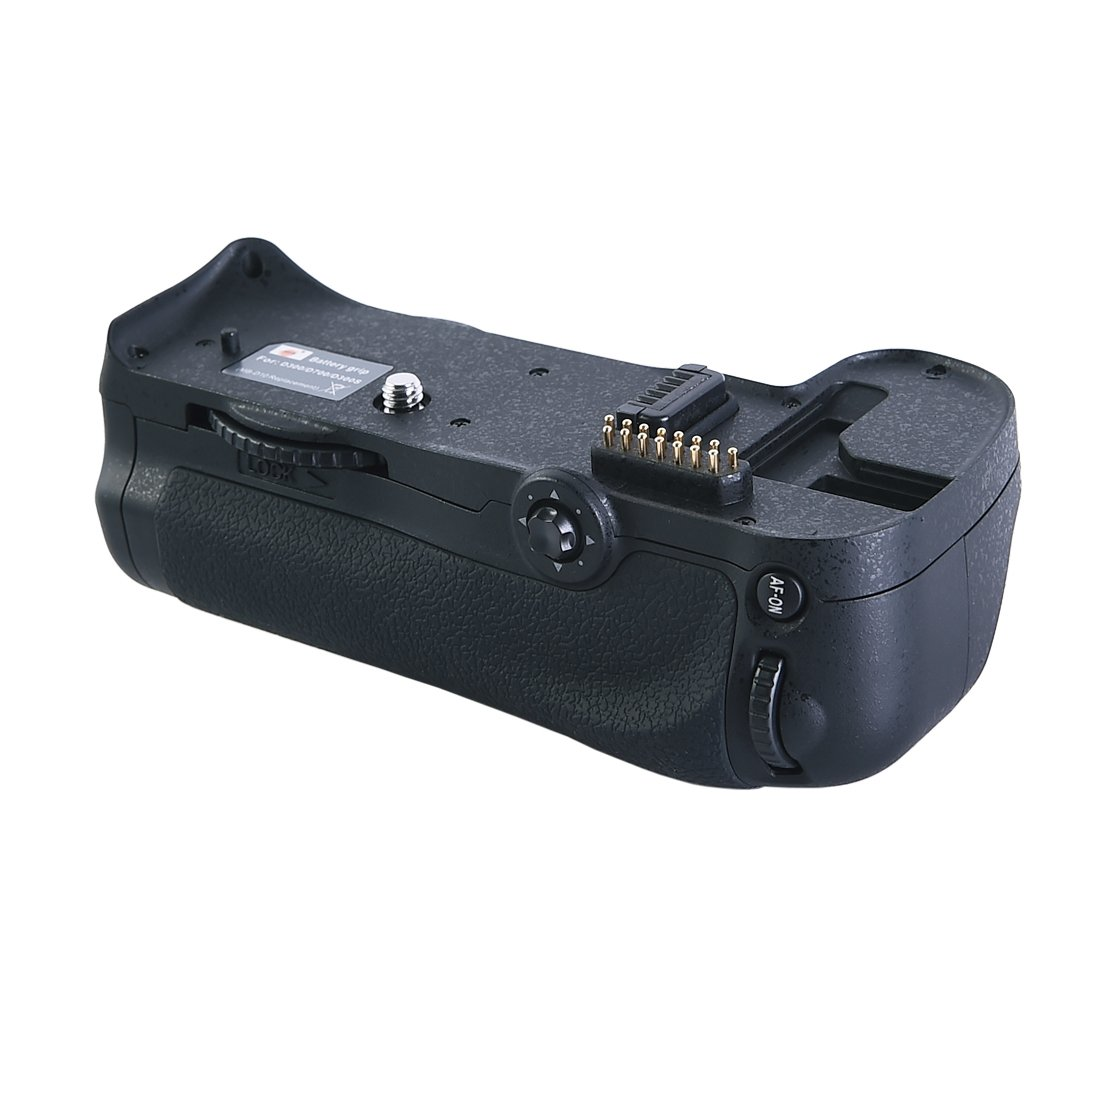 DSTE Pro MB-D10 Vertical Battery Grip for Nikon D300 D300S D700 D900 SLR Digital Camera as EN-EL3E